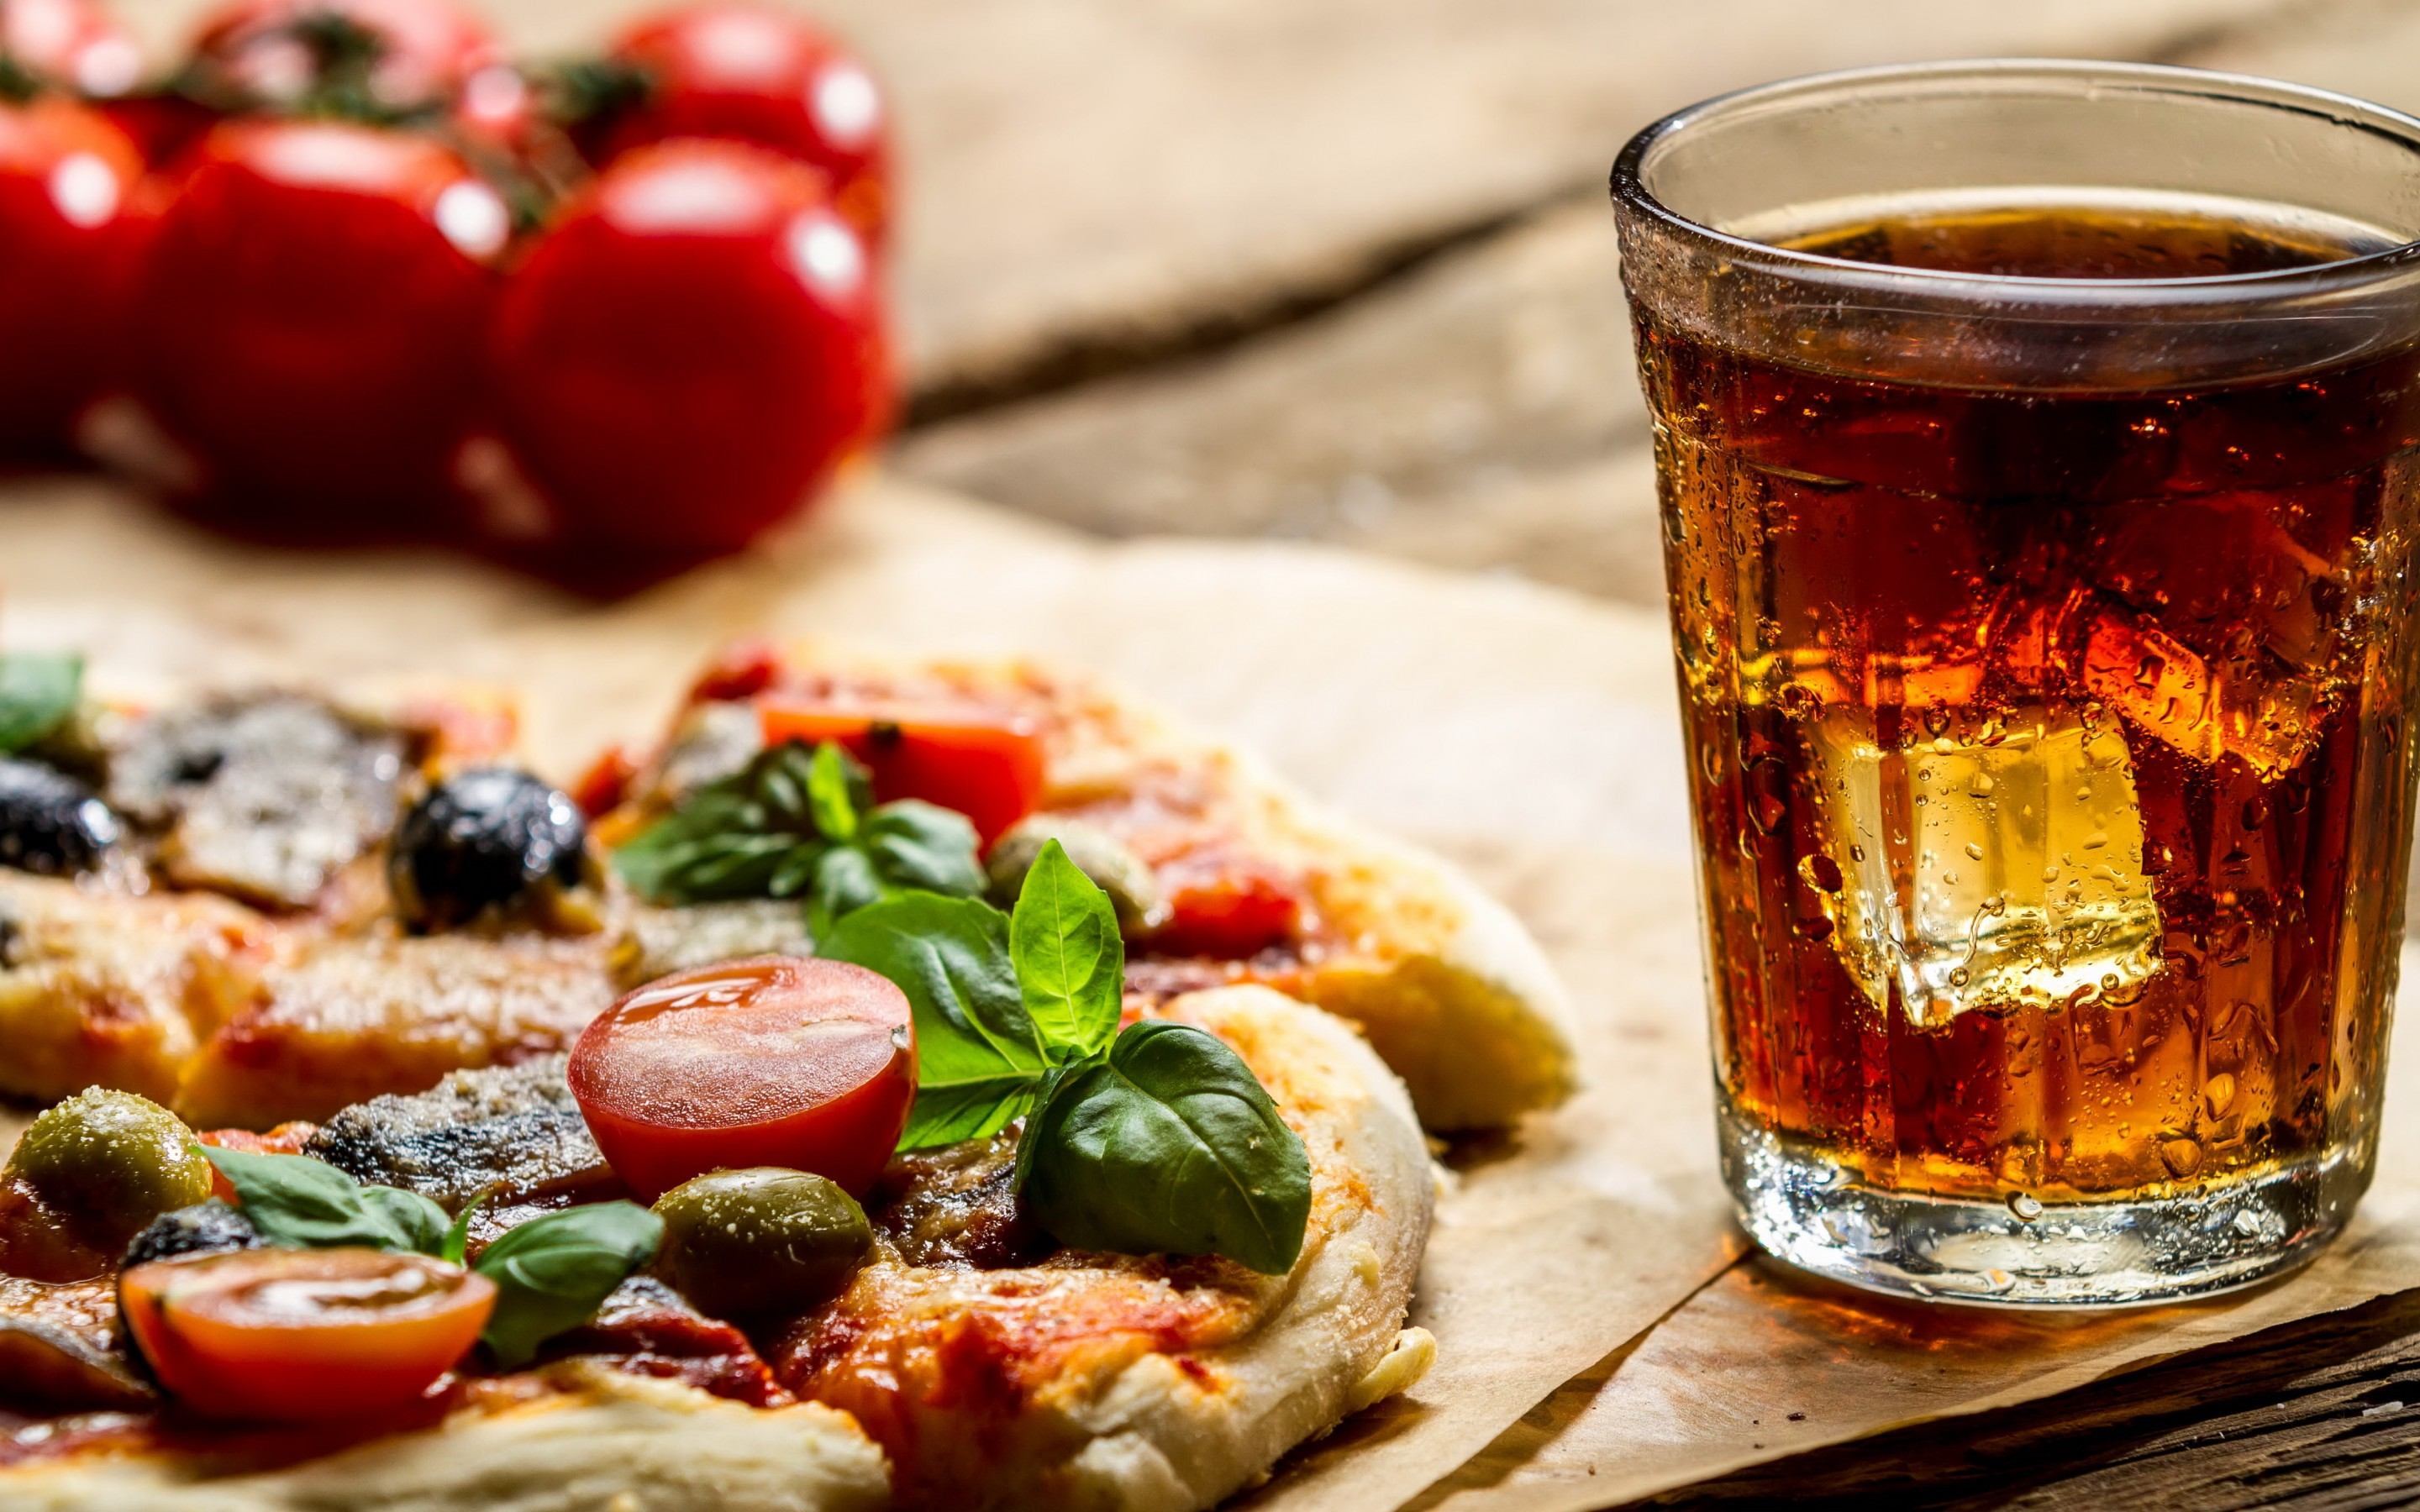 Pics Of Food And Drinks: Drink Pizza Wallpaper